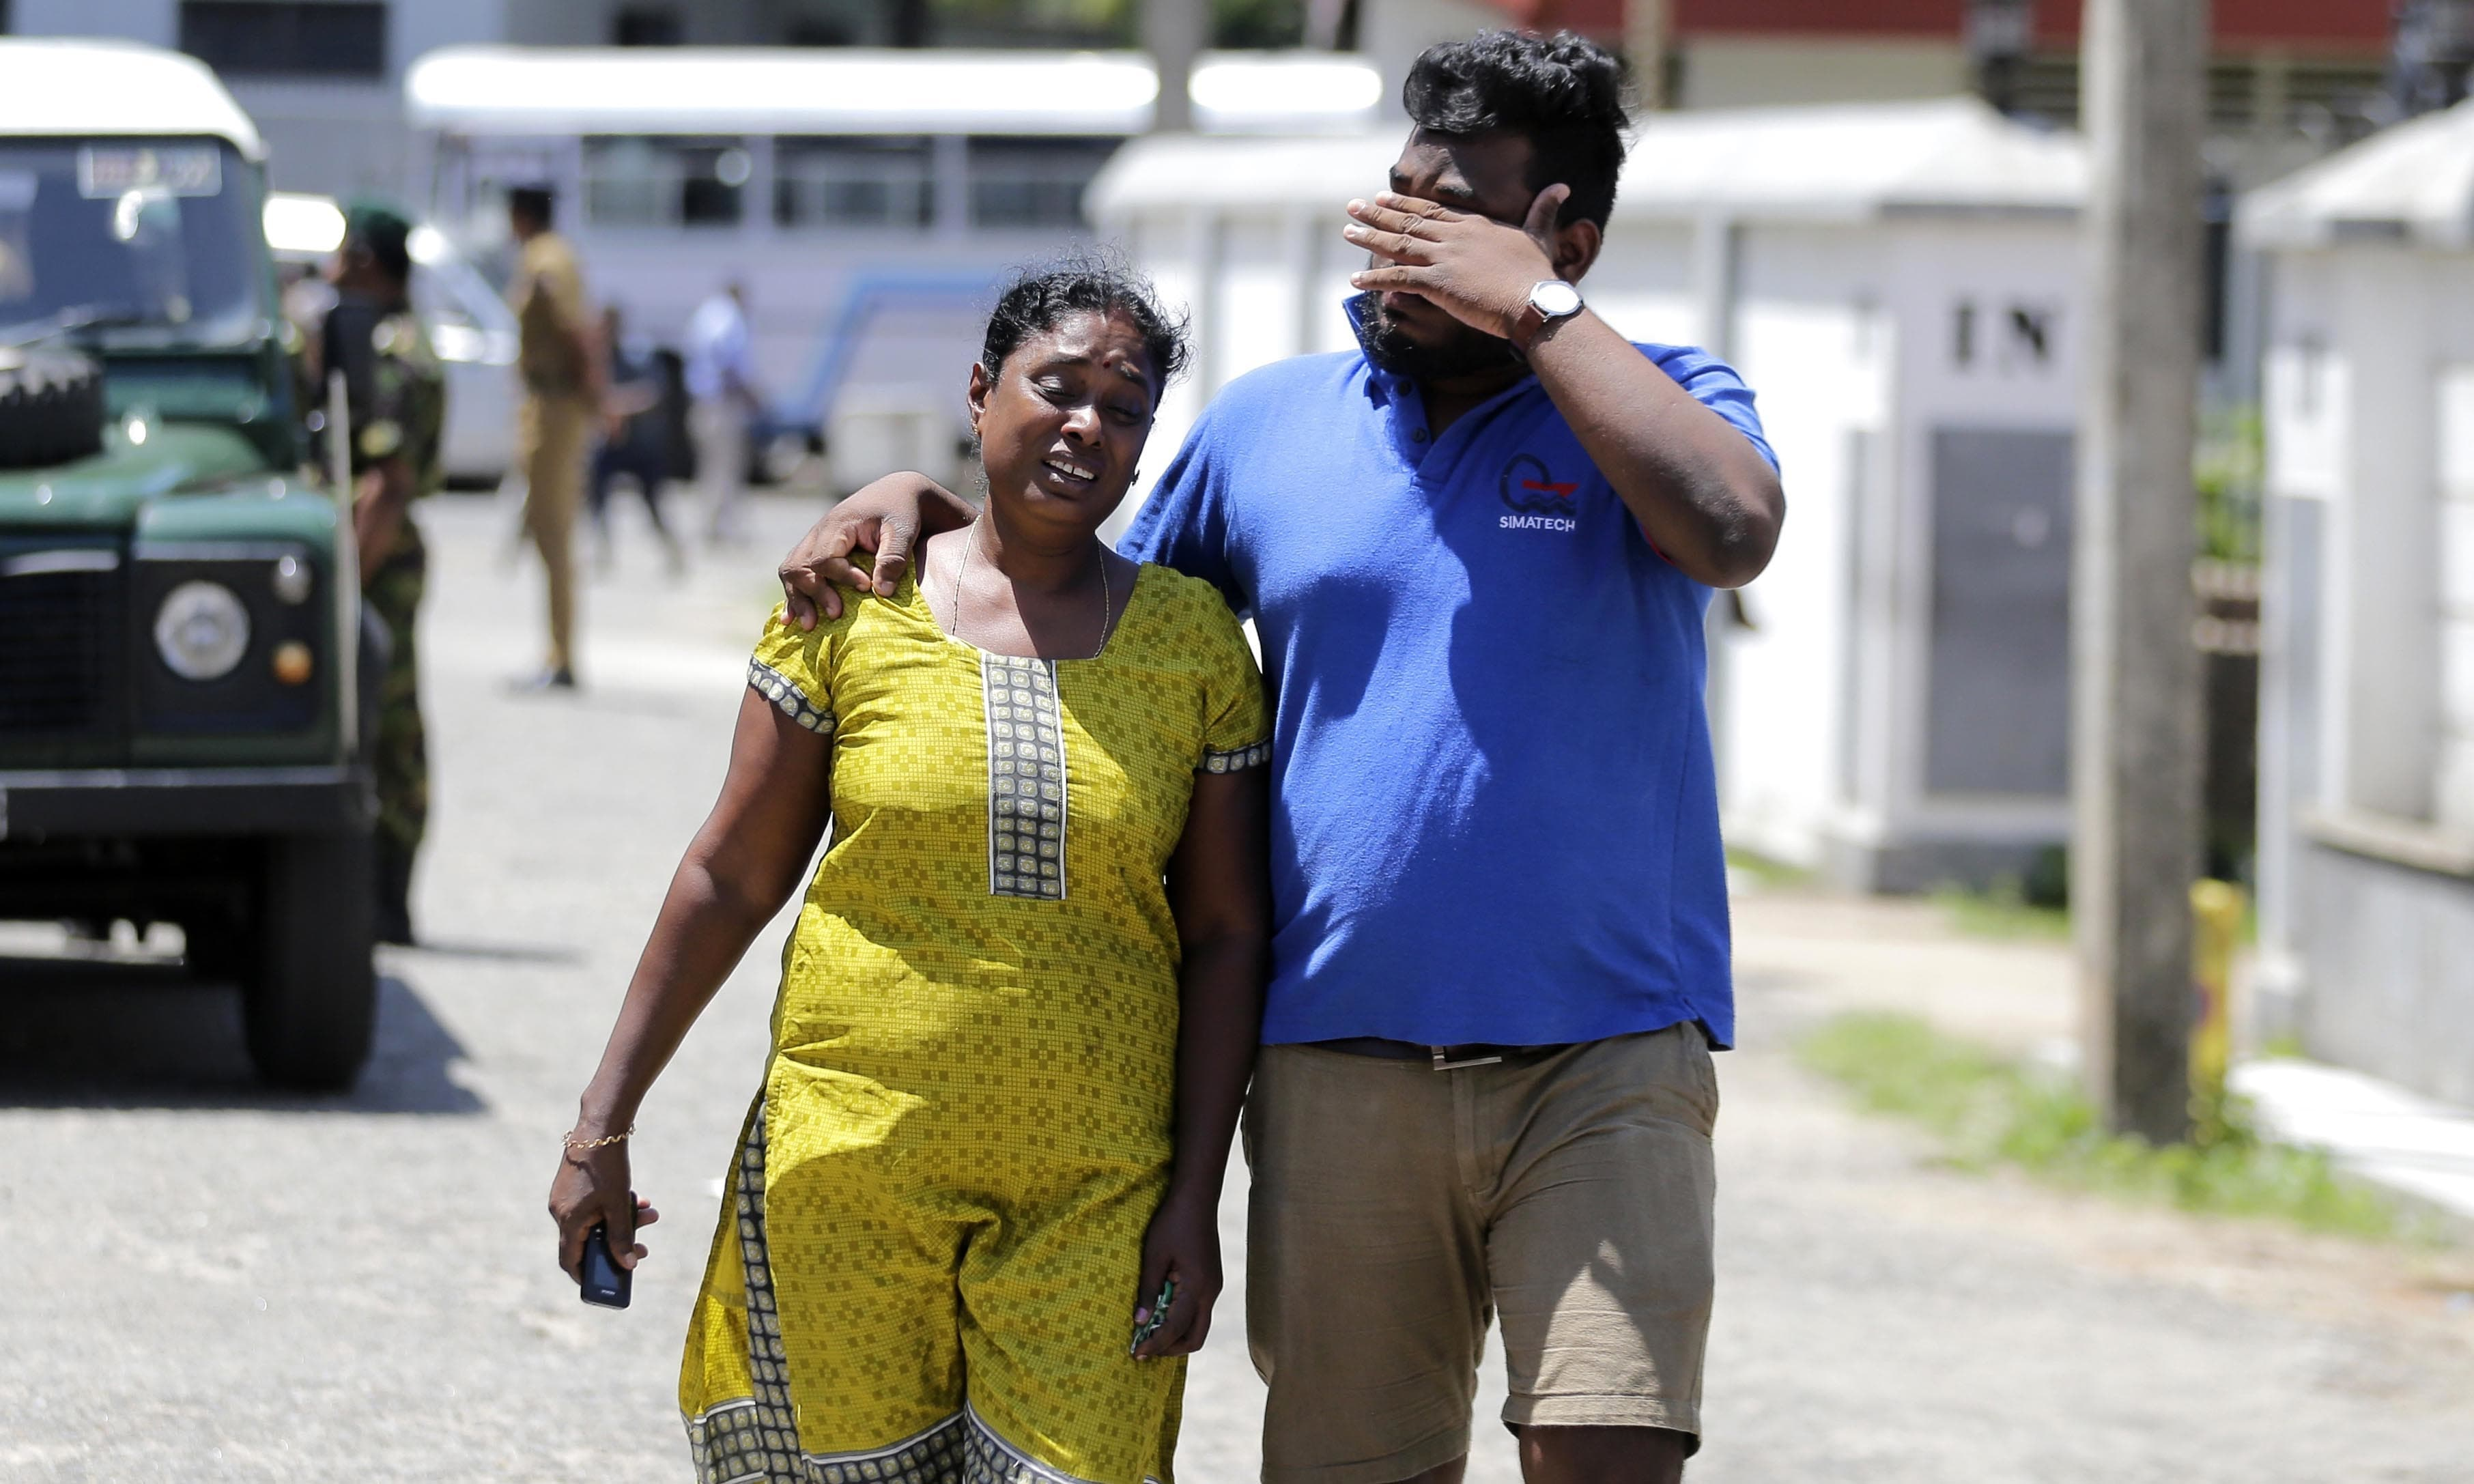 A Sri Lankan couple mourns as they leave from a mortuary after identifying the body of their relative killed in a blast, in Colombo, Sri Lanka. — AP